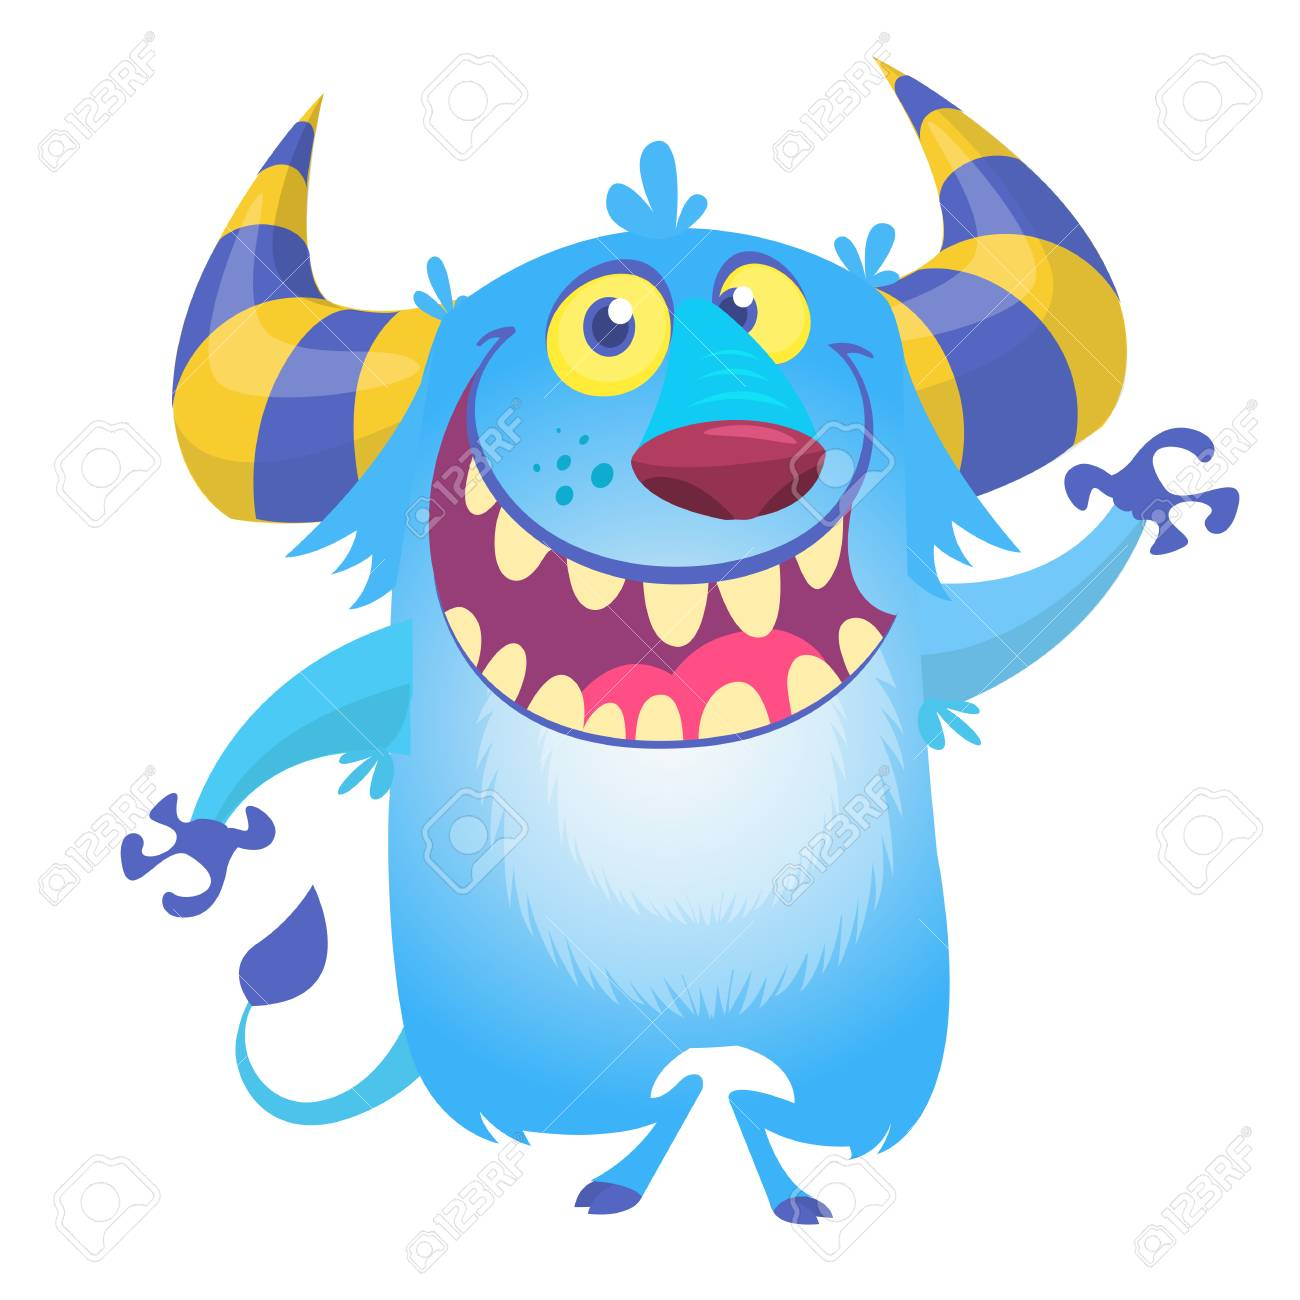 cute fluffy blue monster yeti vector bigfoot character royalty free rh 123rf com